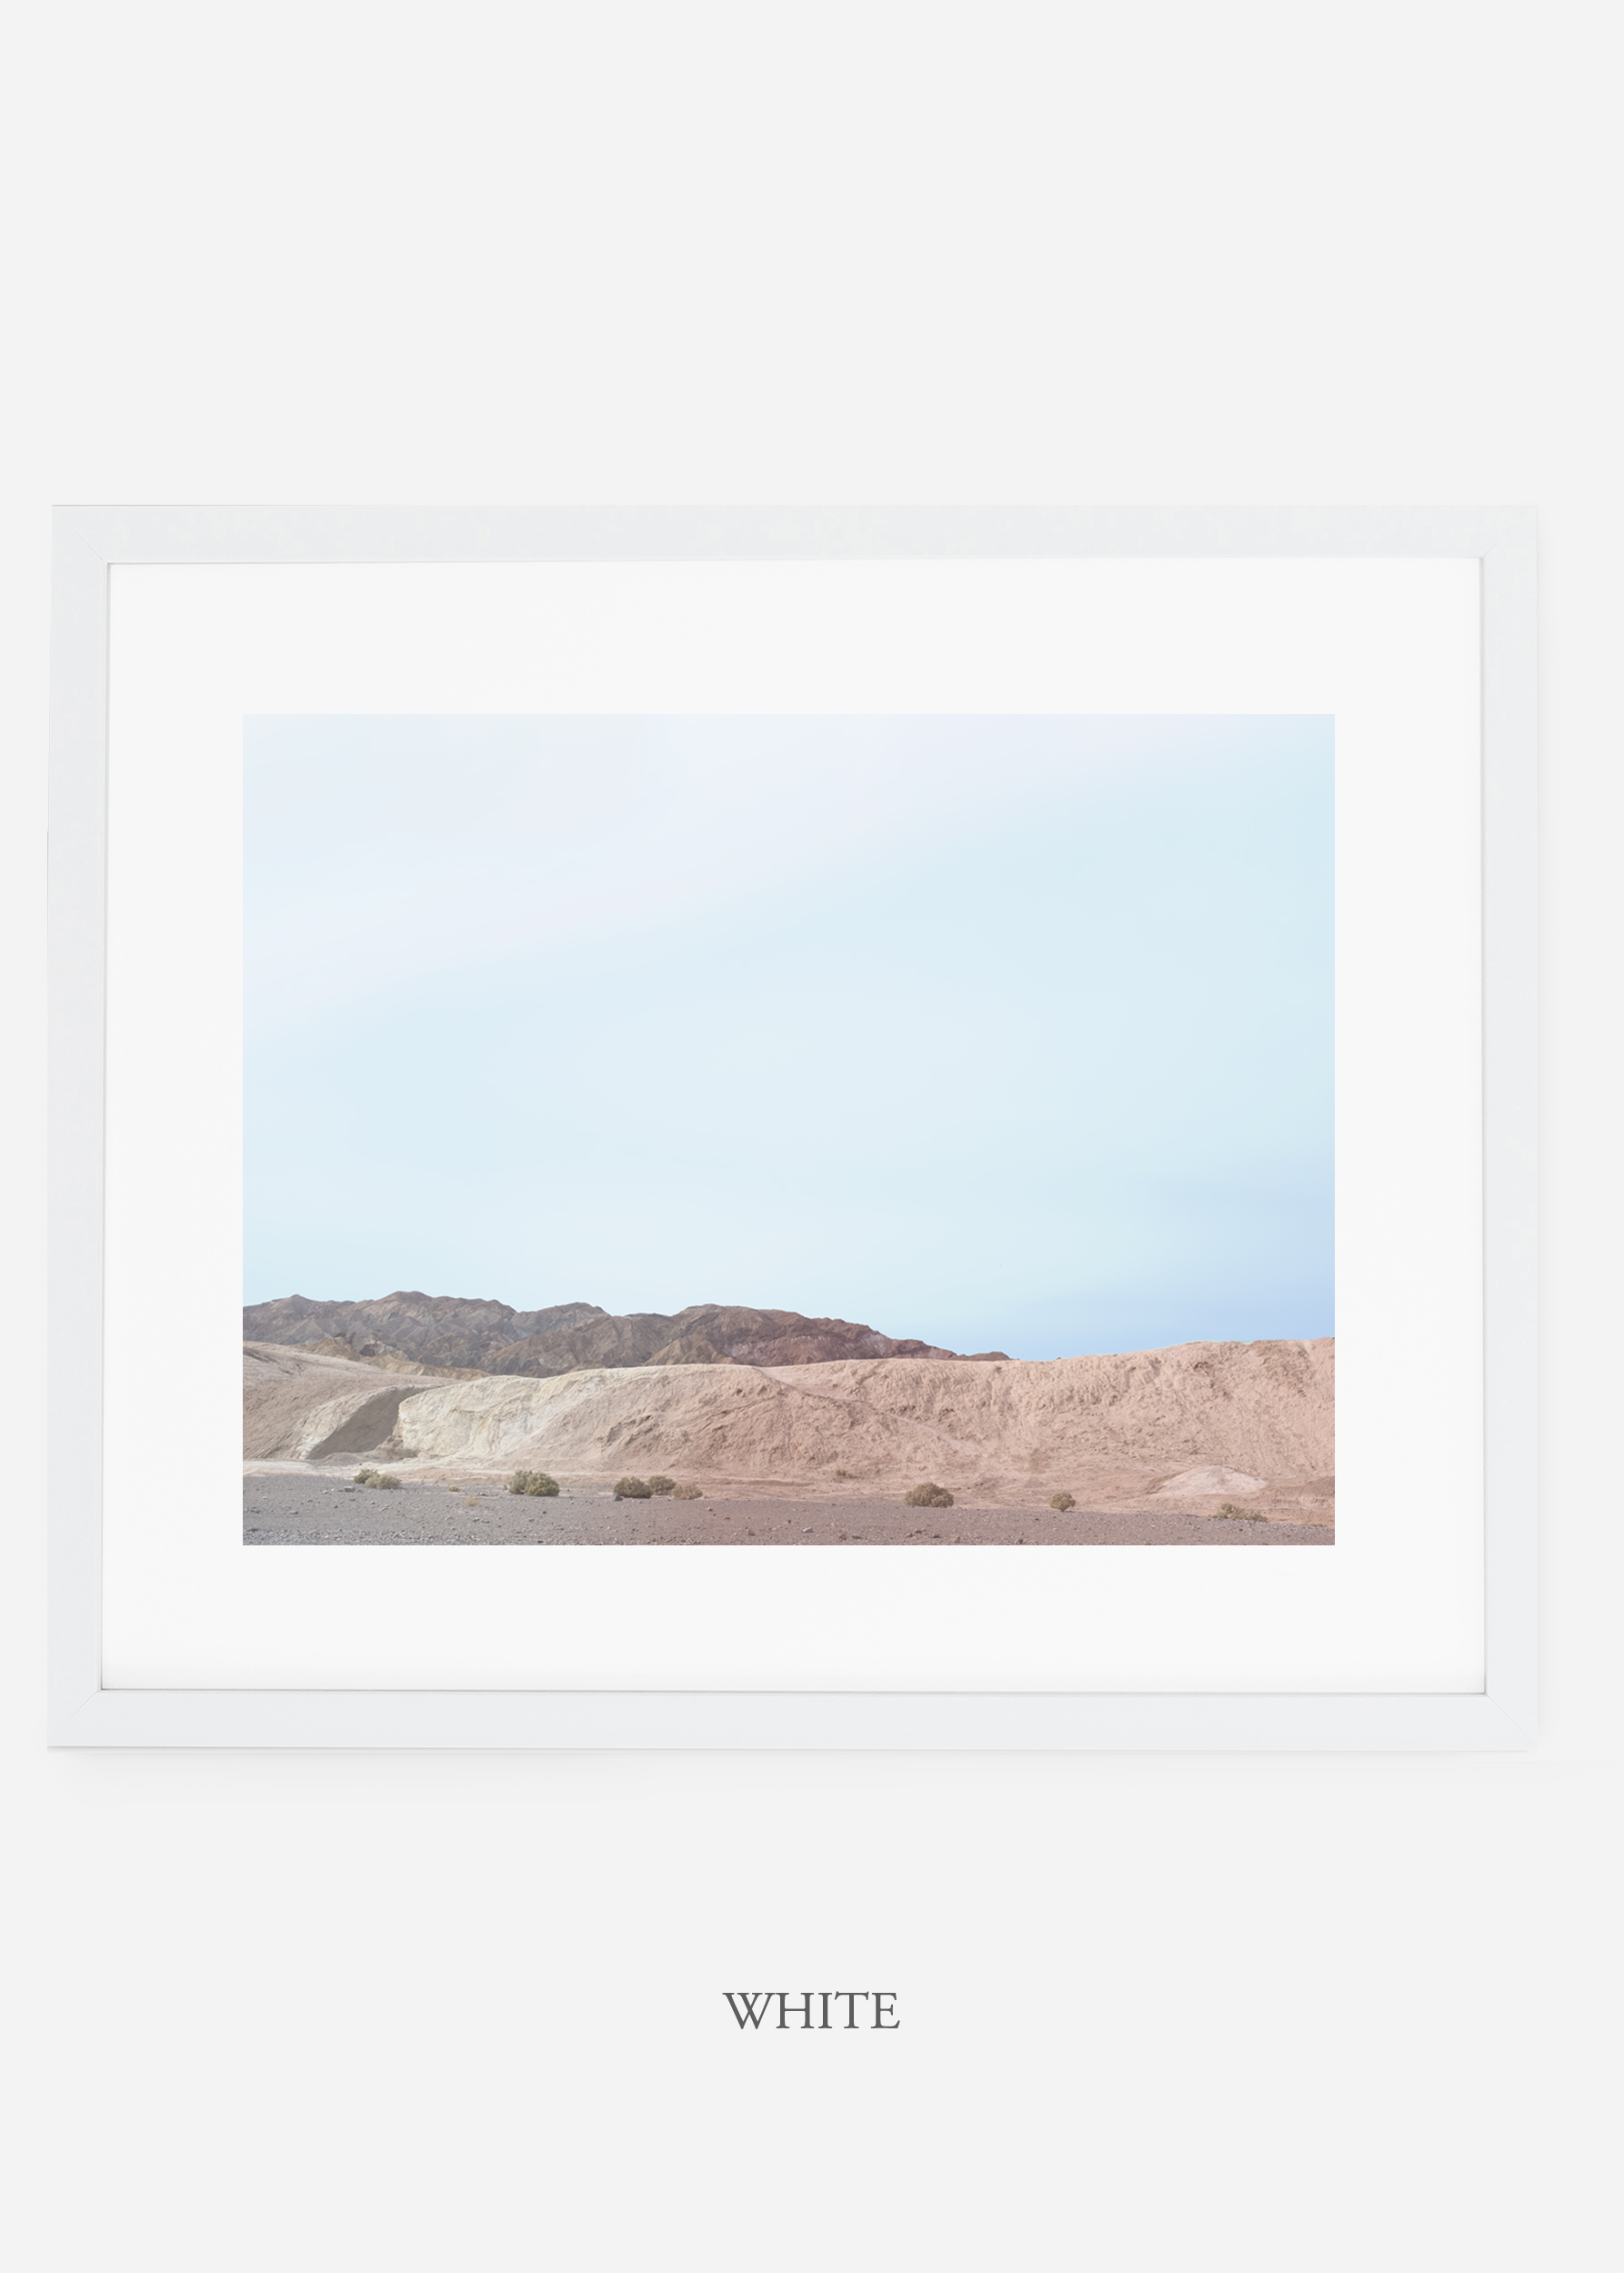 wildercalifornia_whiteframe_deathvalley_6_minimal_cactus_art_interiordesign_blackandwhite.jpg